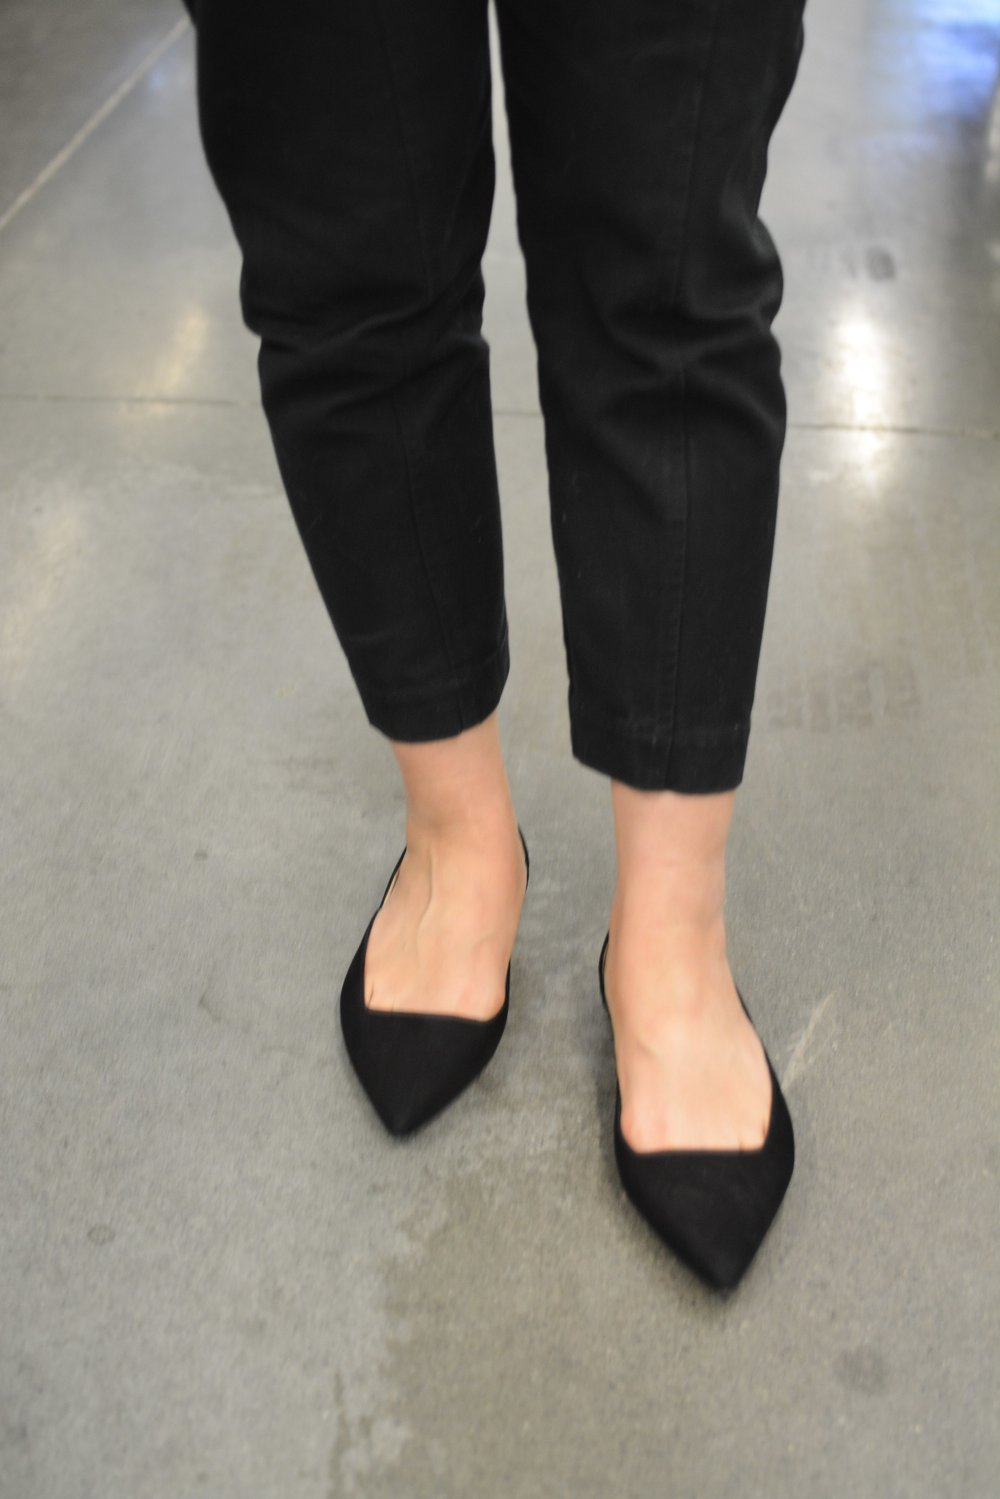 Everlane Review The Editor Slingback shoe (2 of 2)-min.jpg